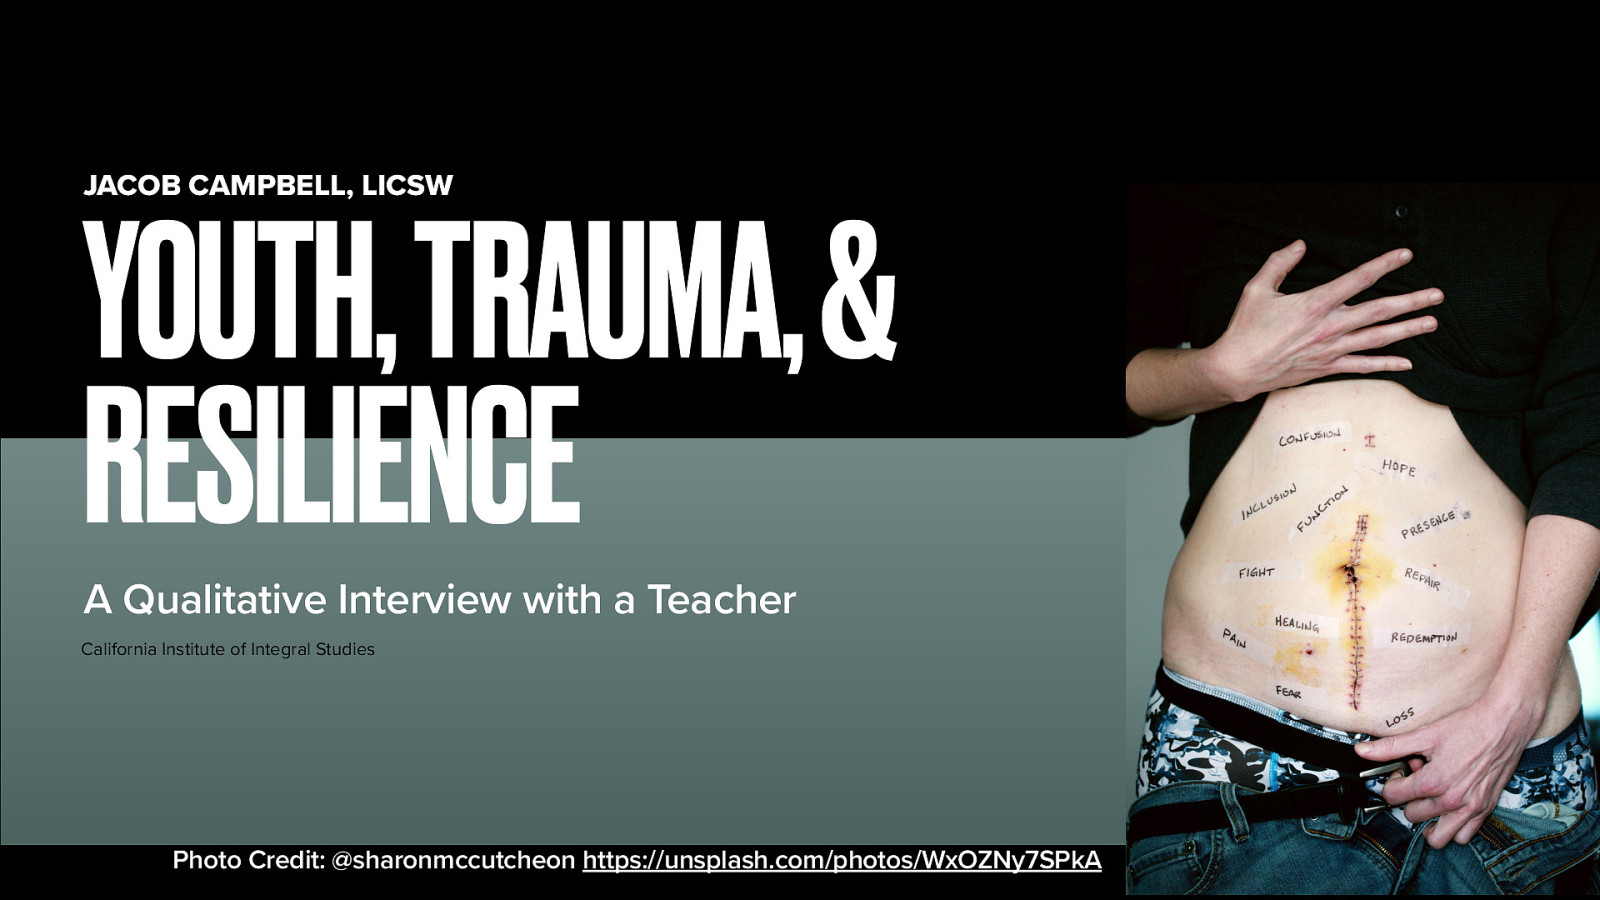 Youth, Trauma, & Resilience: A Qualitative Interview with a Teacher